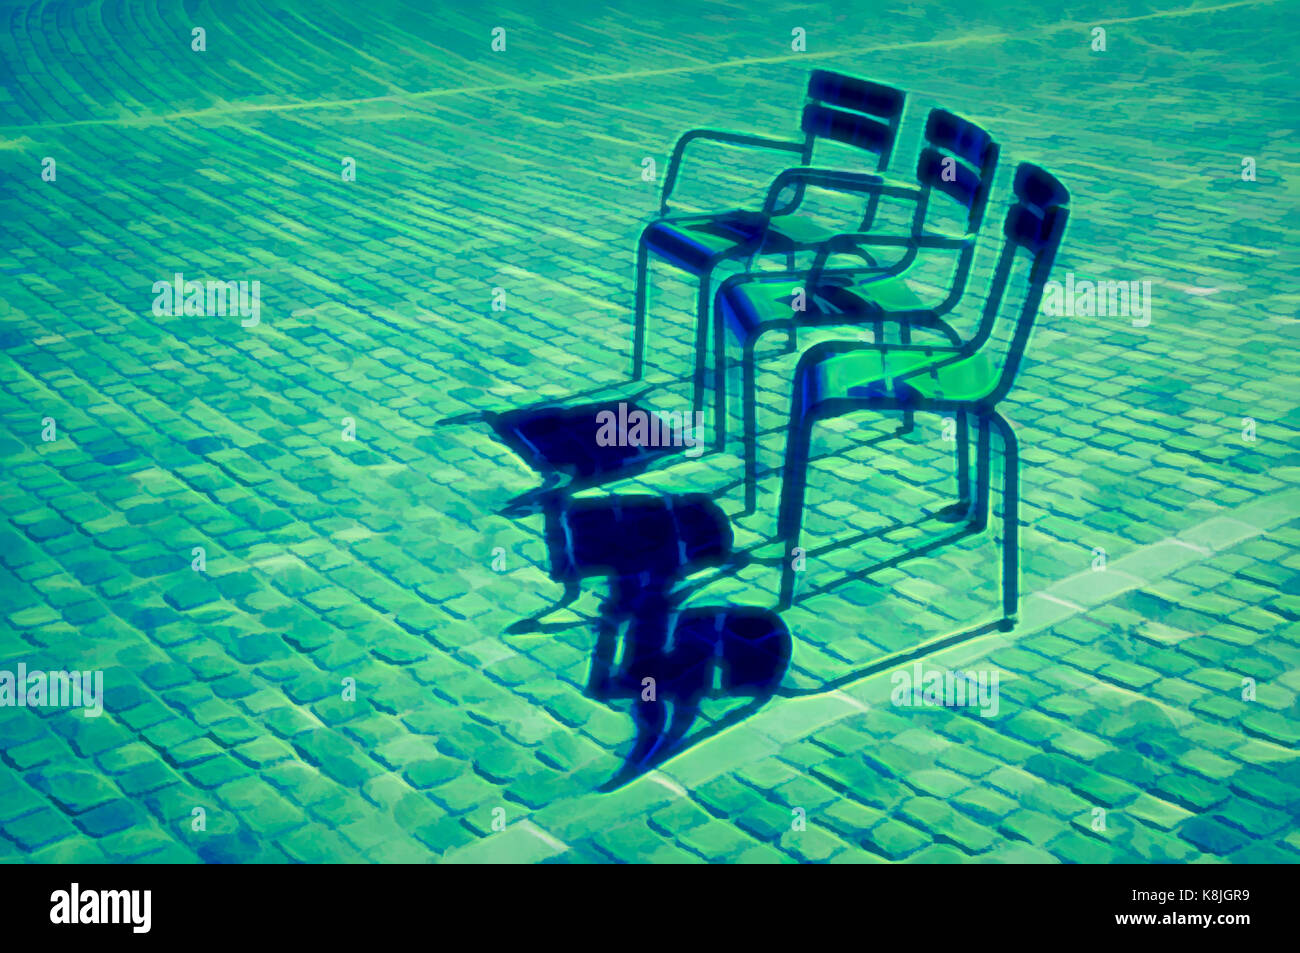 Chairs On A Cobblestone Square   Stock Image